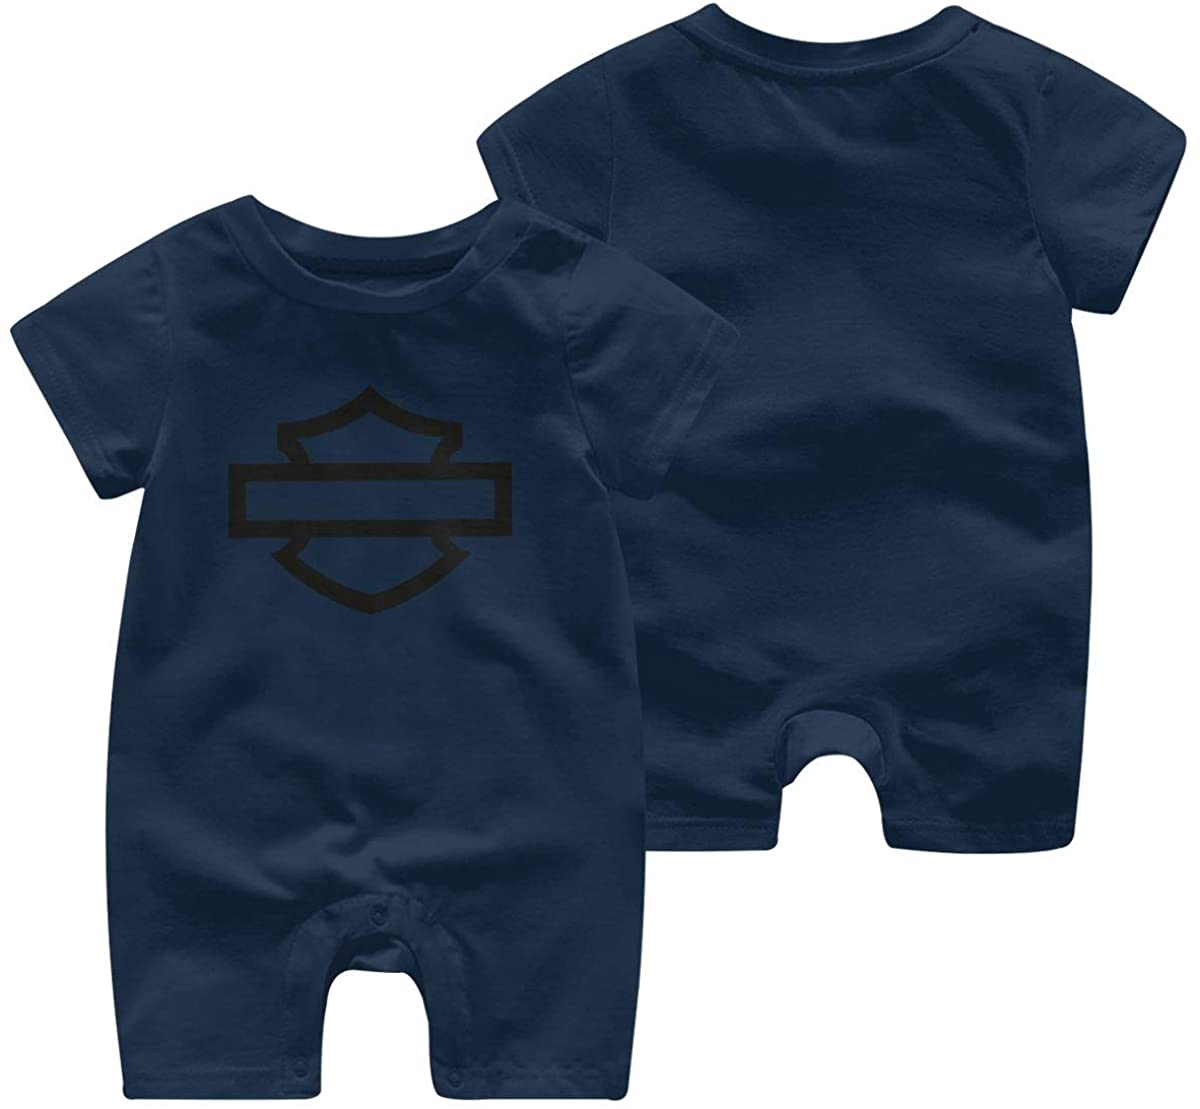 Harley Davidson One Piece Outfits Baby Solid Color Rompers with Button Kids Short Sleeve Playsuit Jumpsuits Cotton Clothing 6 Months Navy